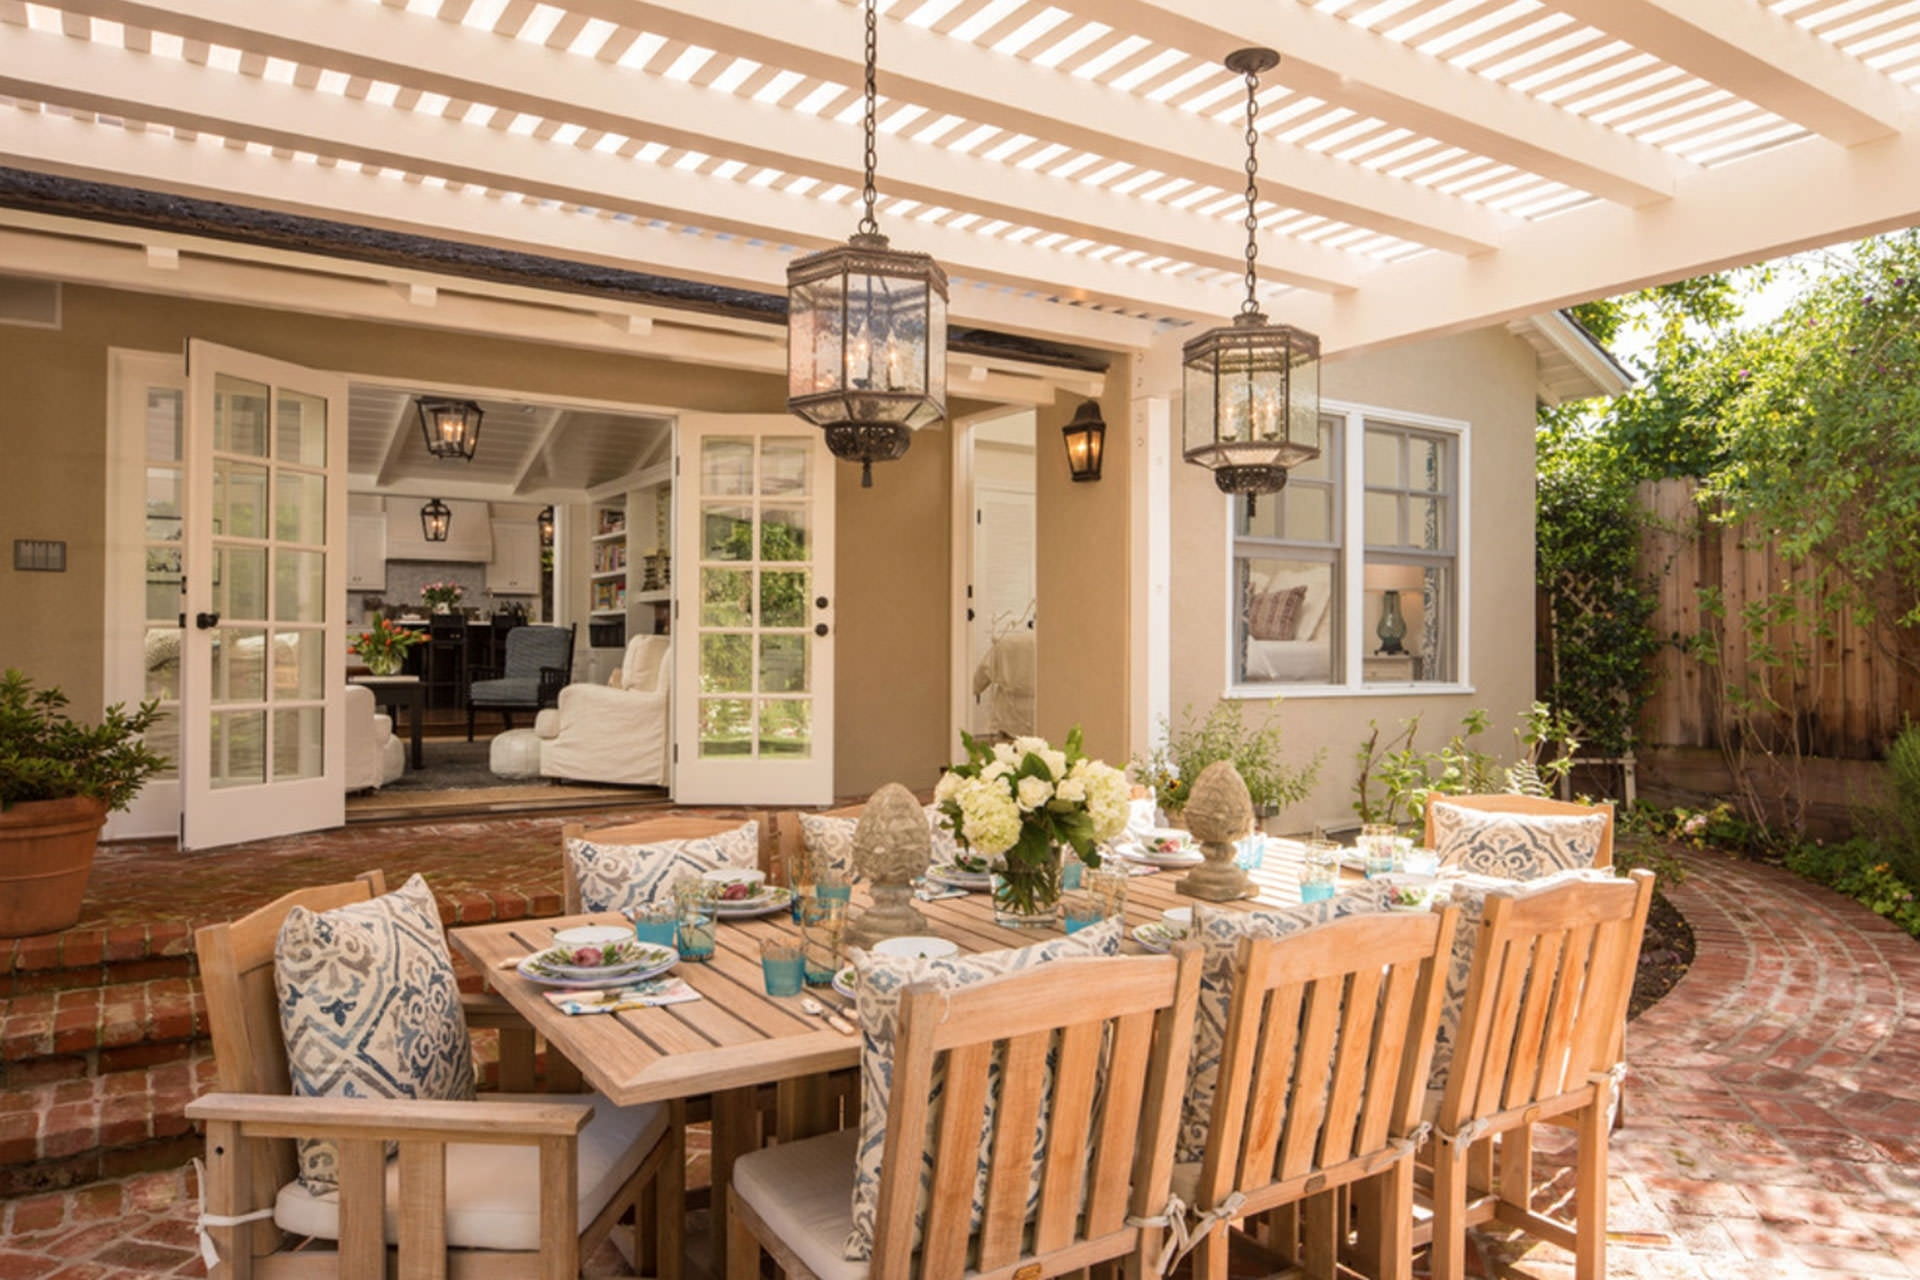 Most Recently Released Outdoor Hanging Lanterns For Patio Pertaining To 33 Neat Design Outdoor Lantern Lighting Ideas Five Pergola To (View 10 of 20)